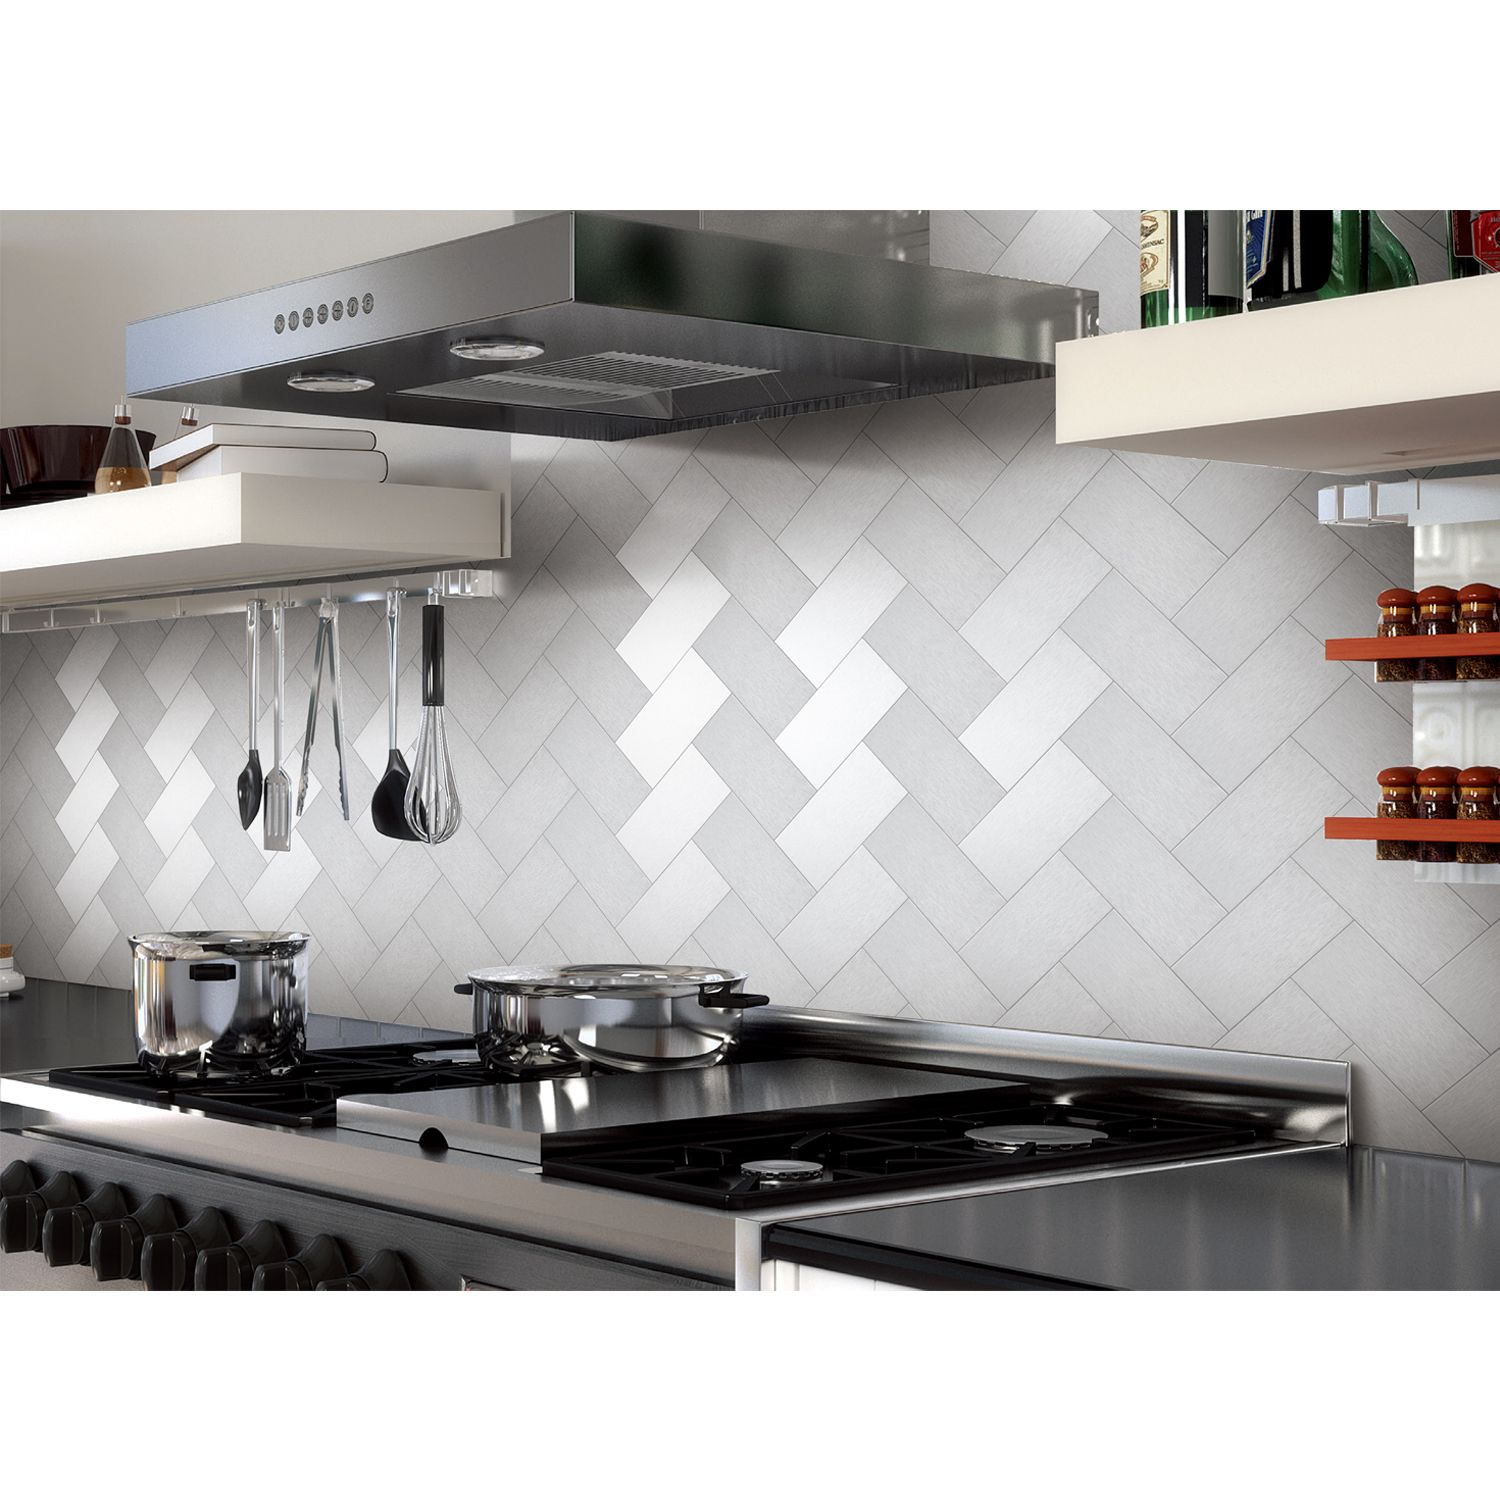 Medium image of 32 pieces peel and stick kitchen backsplash adhesive metal tiles for wall